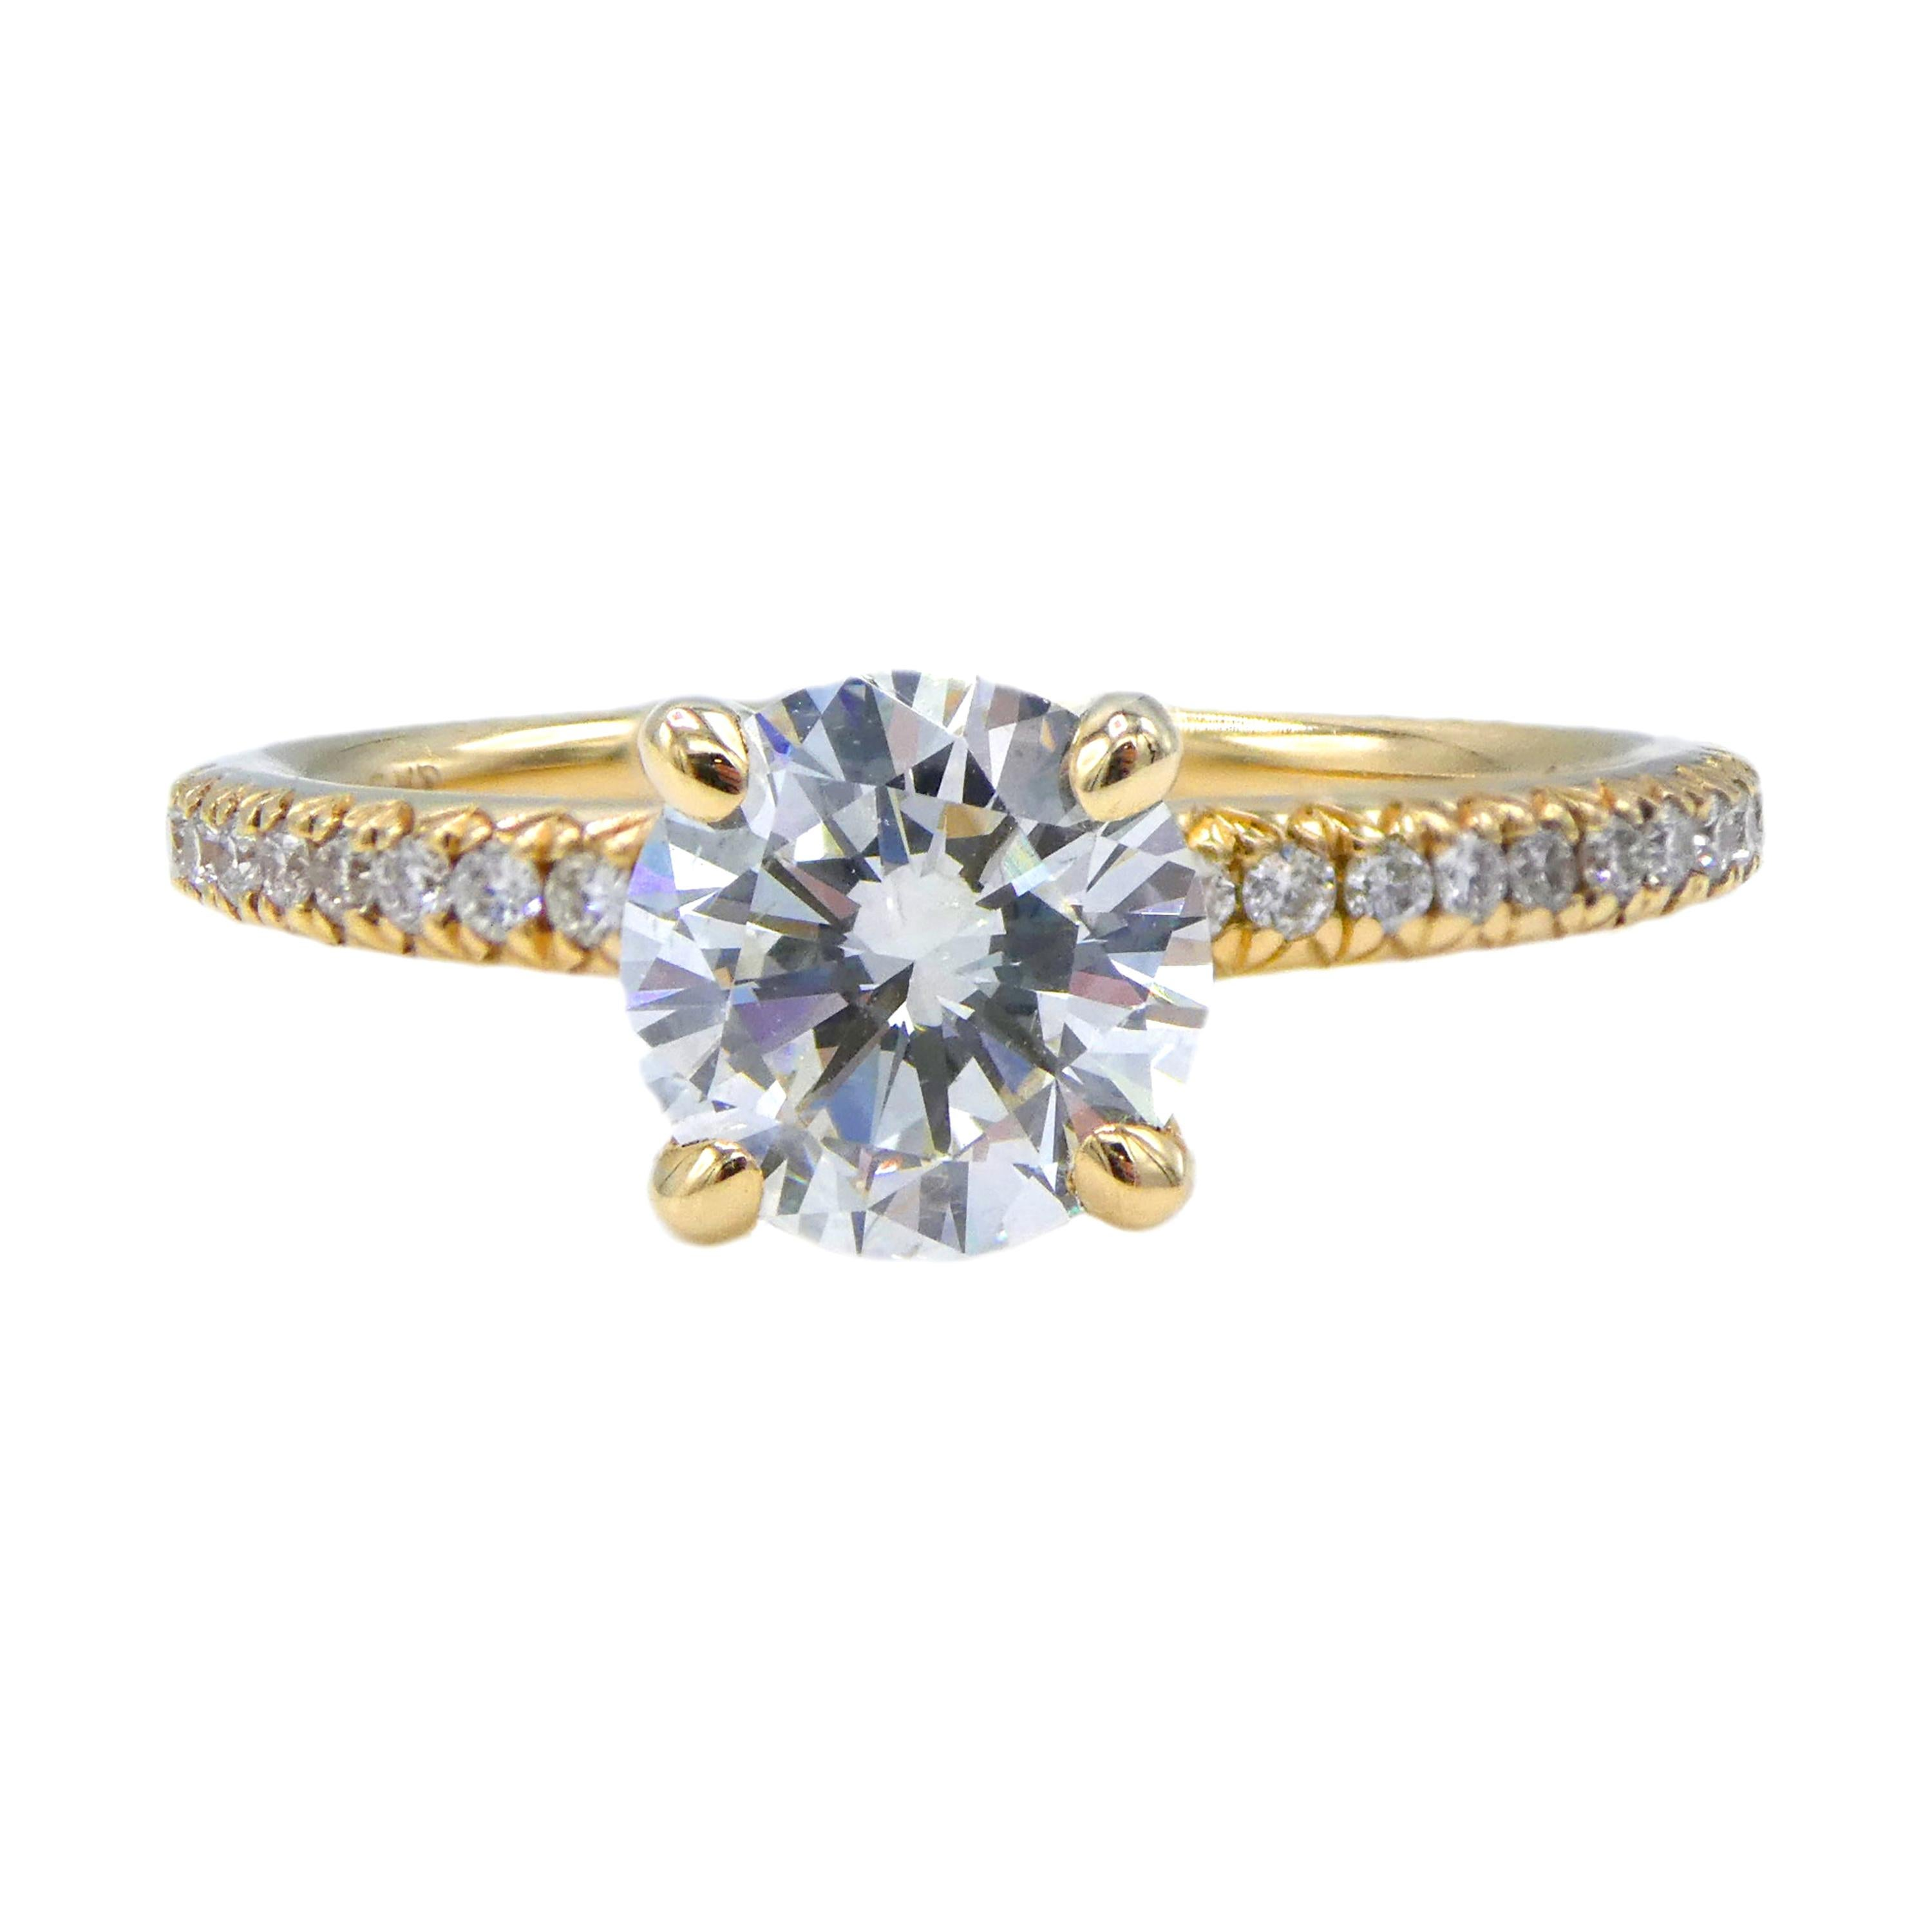 GIA Certified 0.94 Carat Round Diamond Yellow Gold Solitaire Engagement Ring